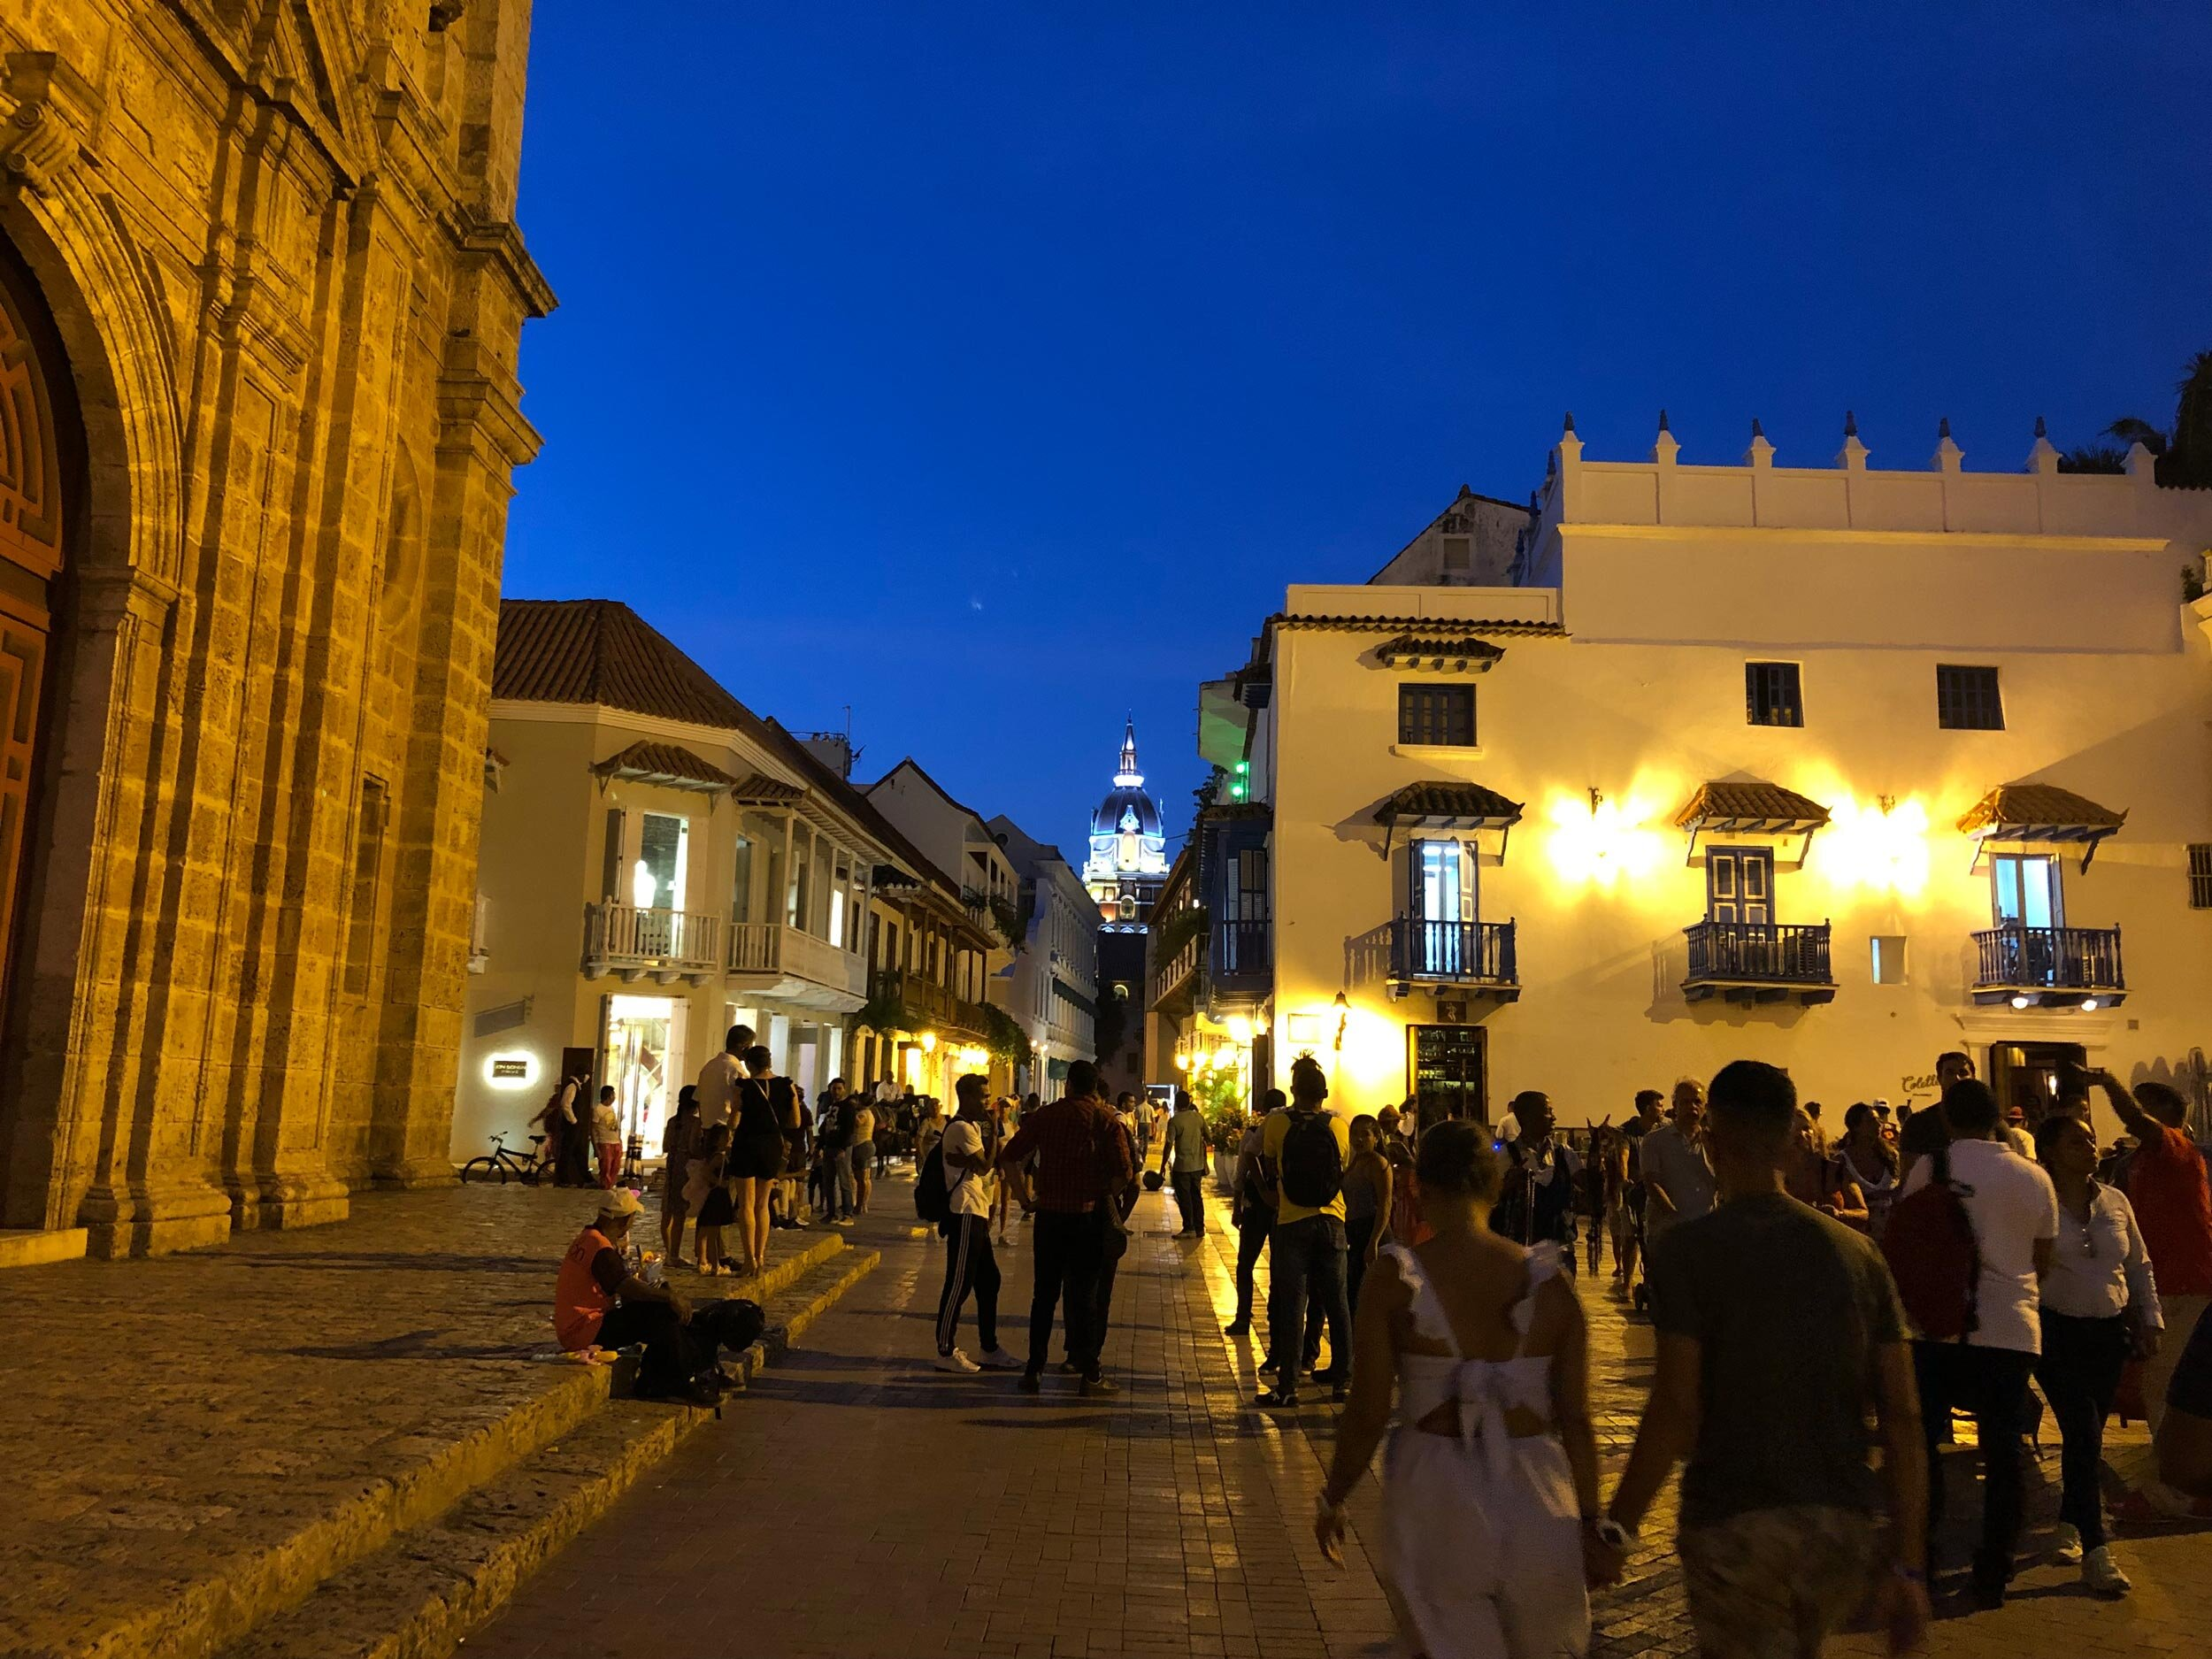 The view from Plaza San Pedro Claver looking towards the Cathedral lit up at night.